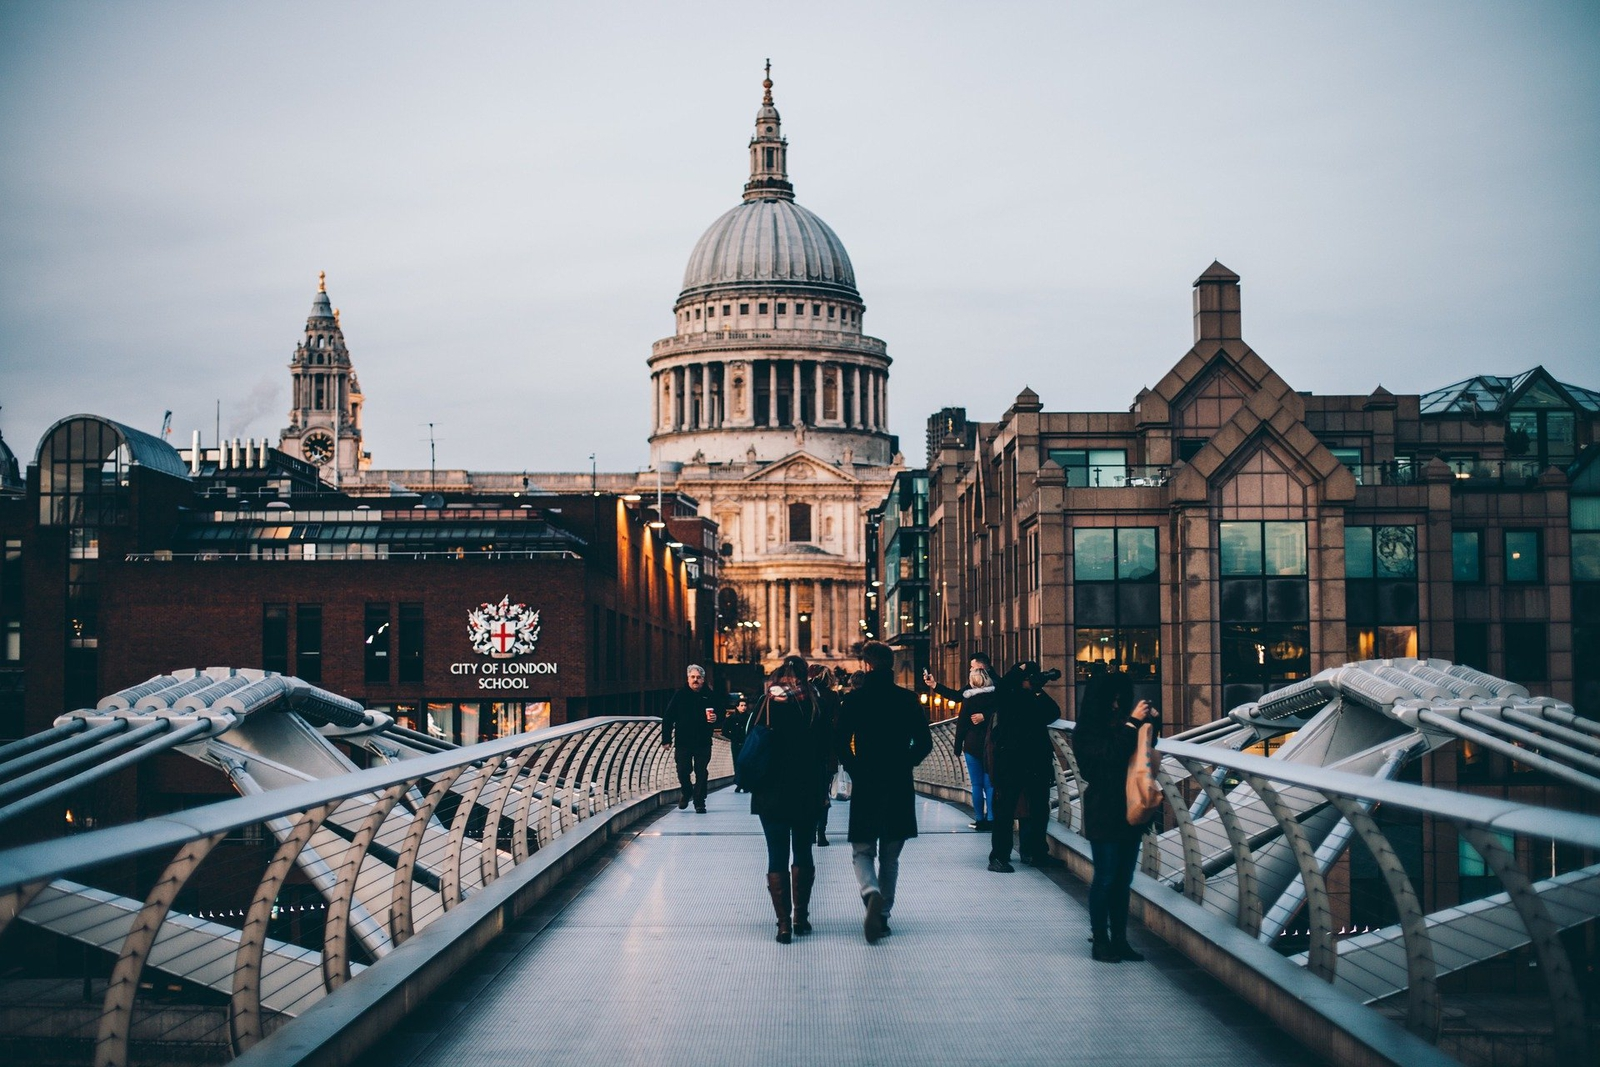 image of london with St Paul's